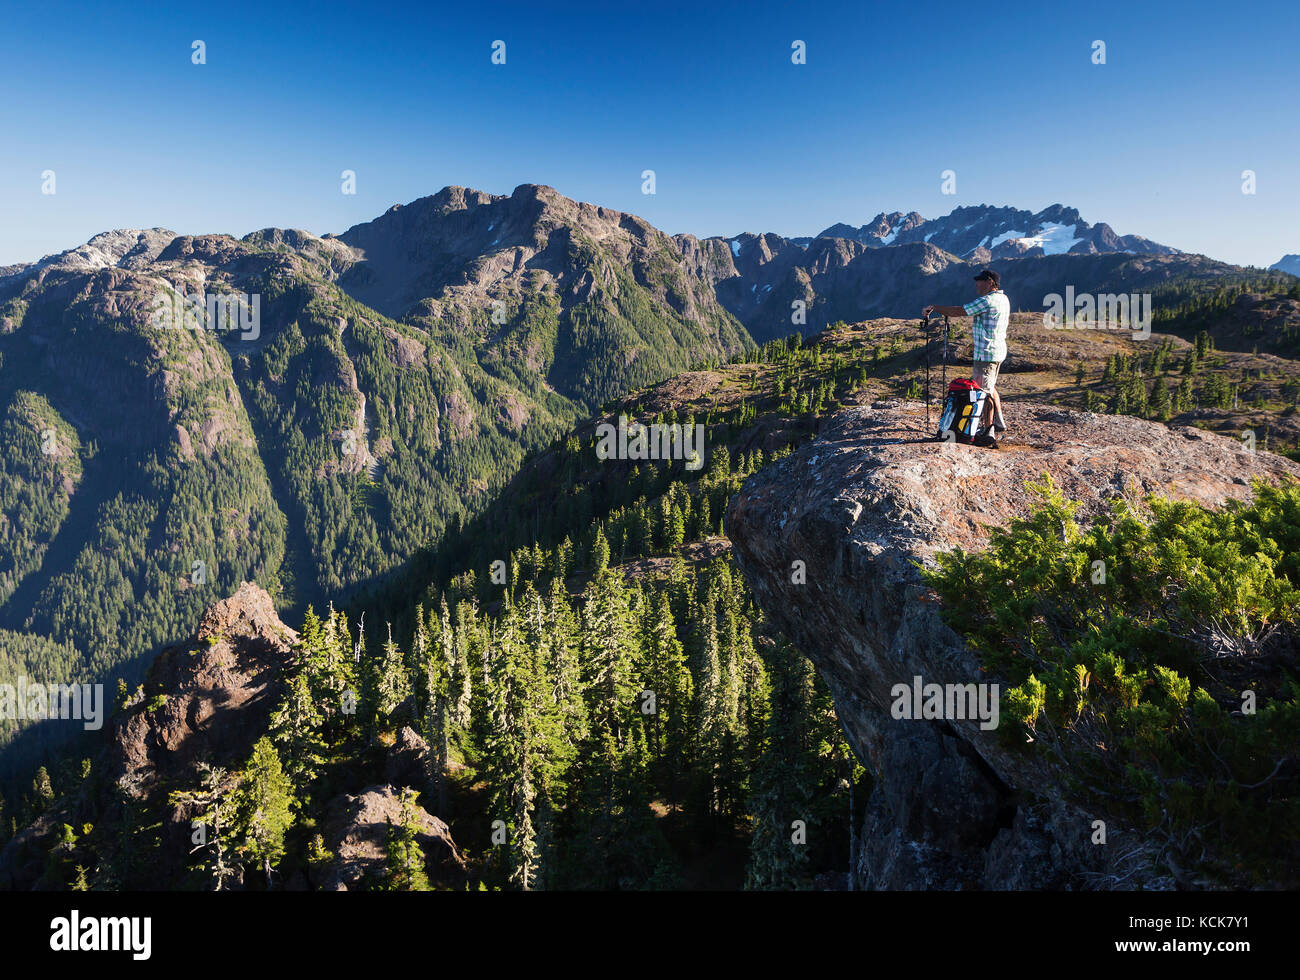 A lone hiker on the Flower Ridge trail overlooks the Henshaw/Shepherd Creek watershed in Strathcona Park.  Strathcona - Stock Image